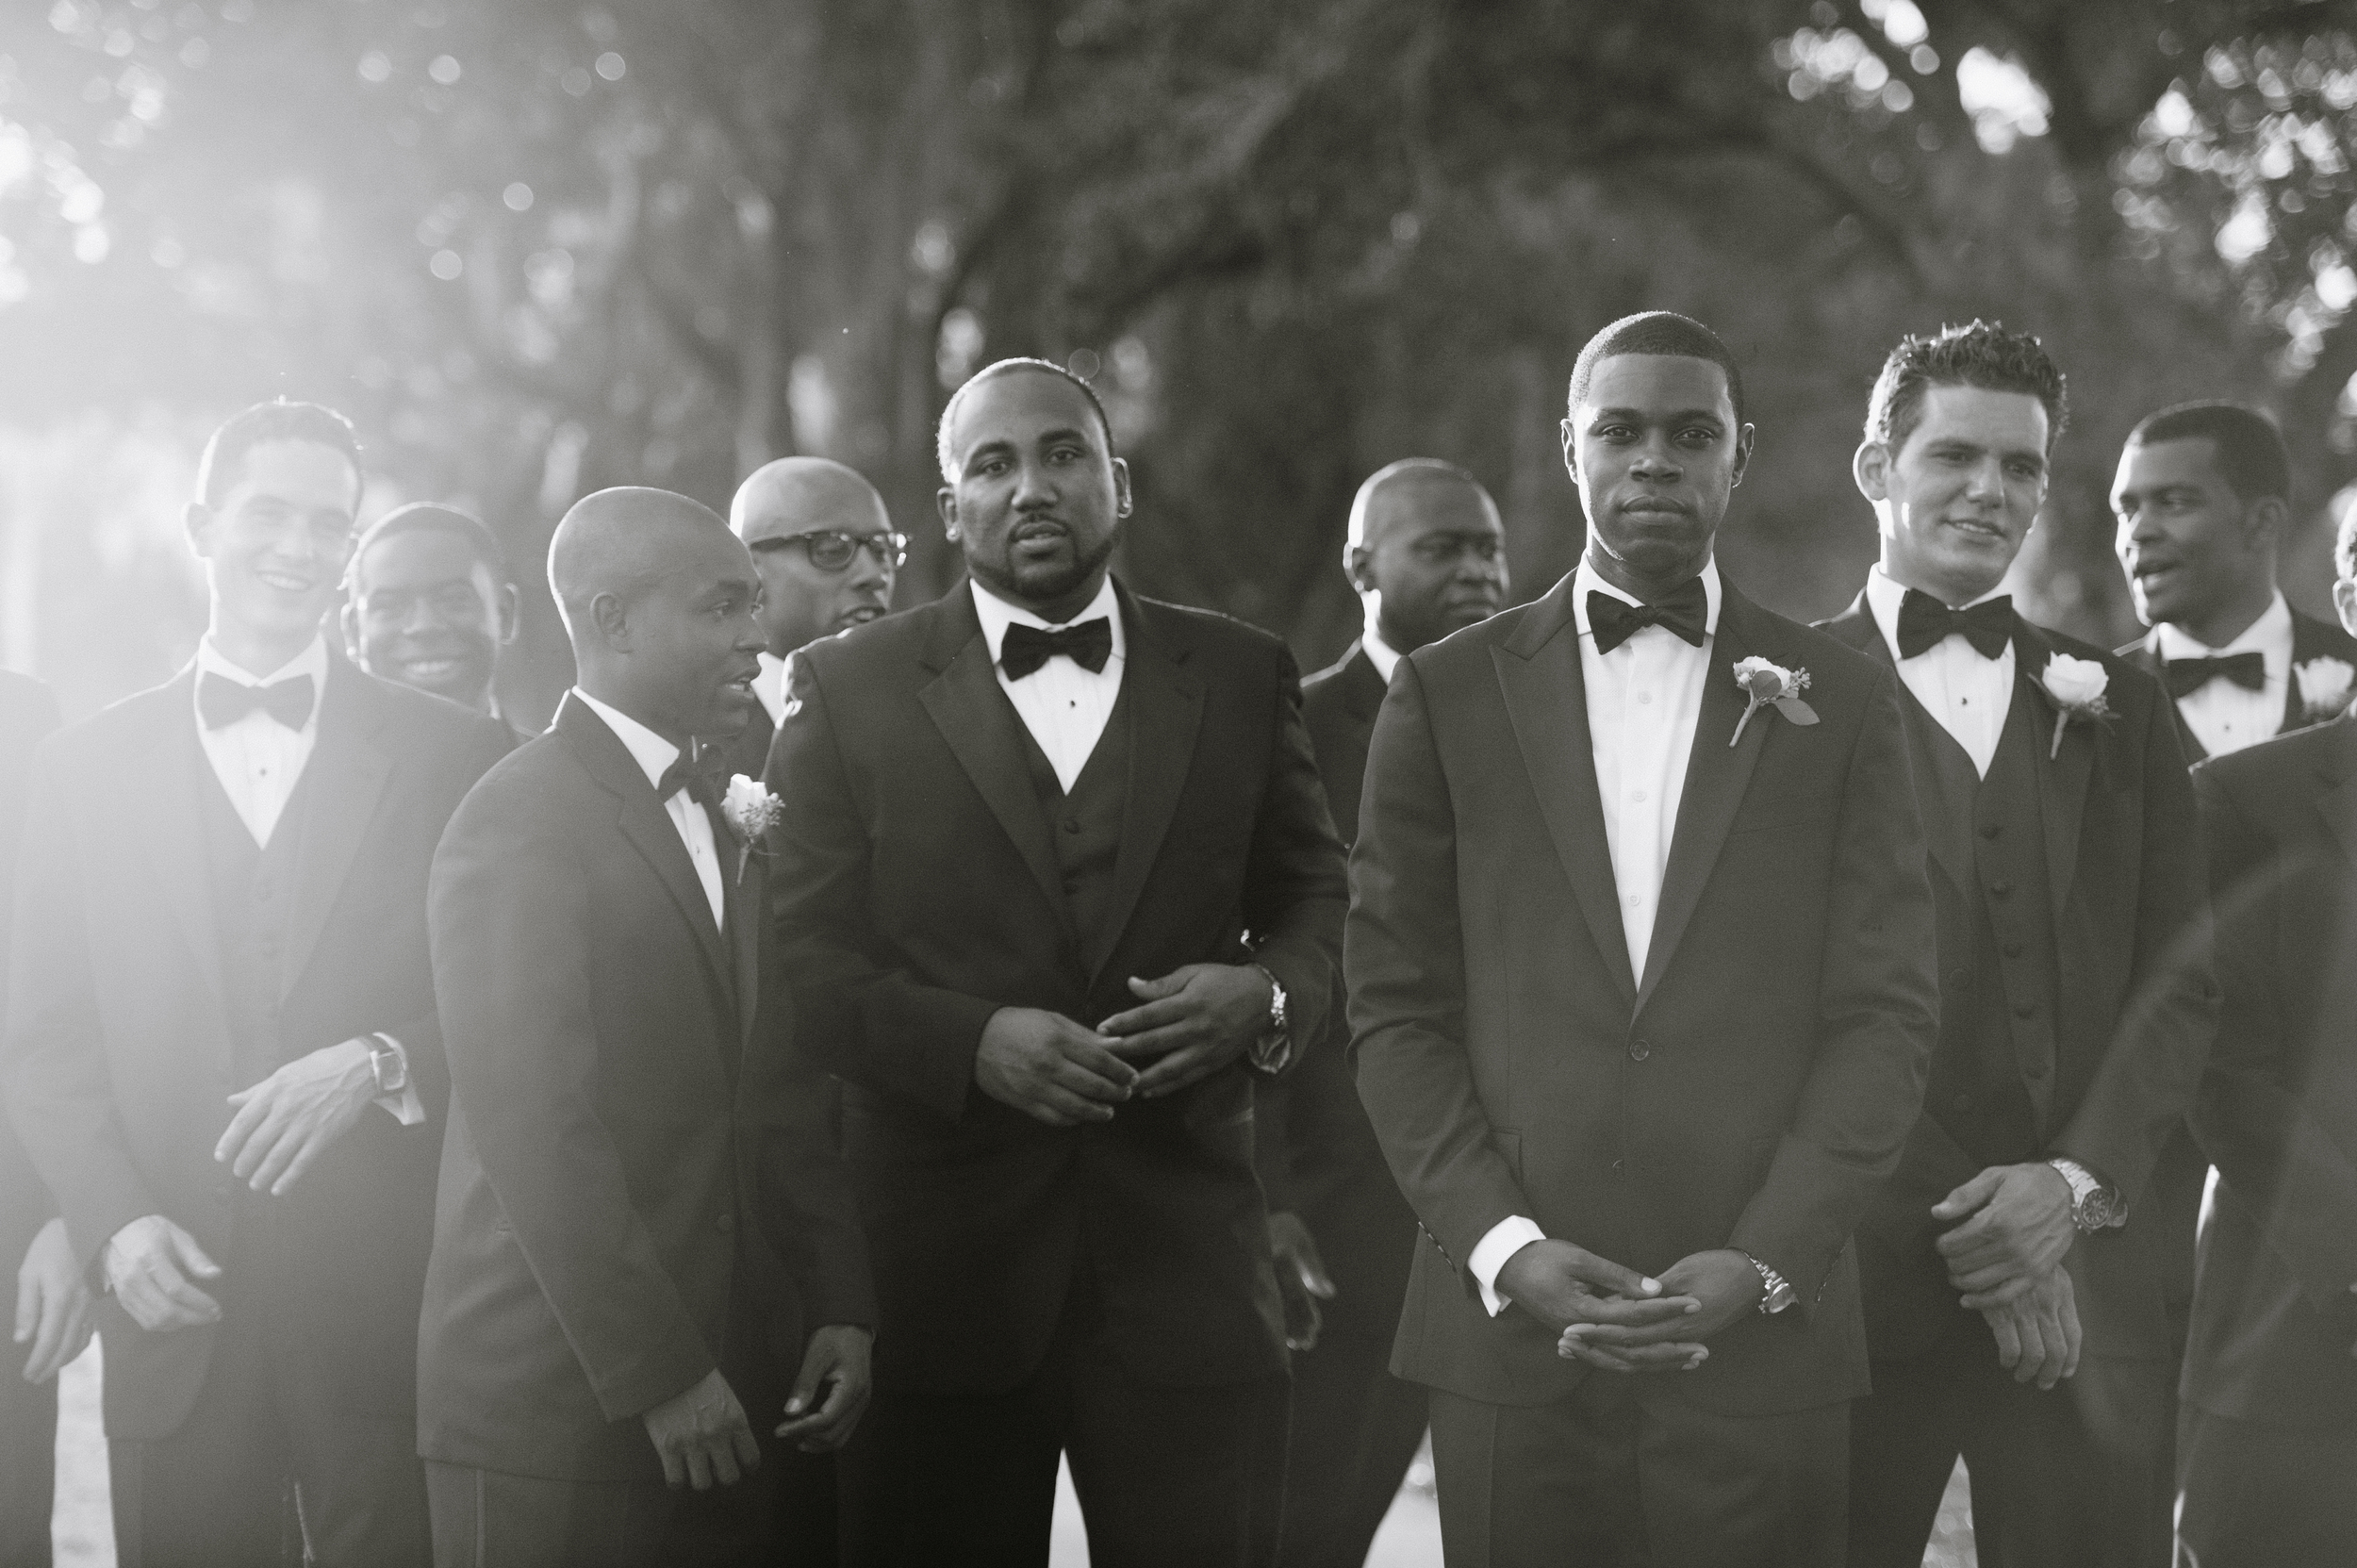 Destination Wedding Photographer Lexia Frank is a film photographer on the west coast specializing in luxury weddings and fine art film photography. In this article she writes a letter to the groom, and talks about the groom's role in photography. groomsmen pose during this tampa wedding. www.lexiafrank.com